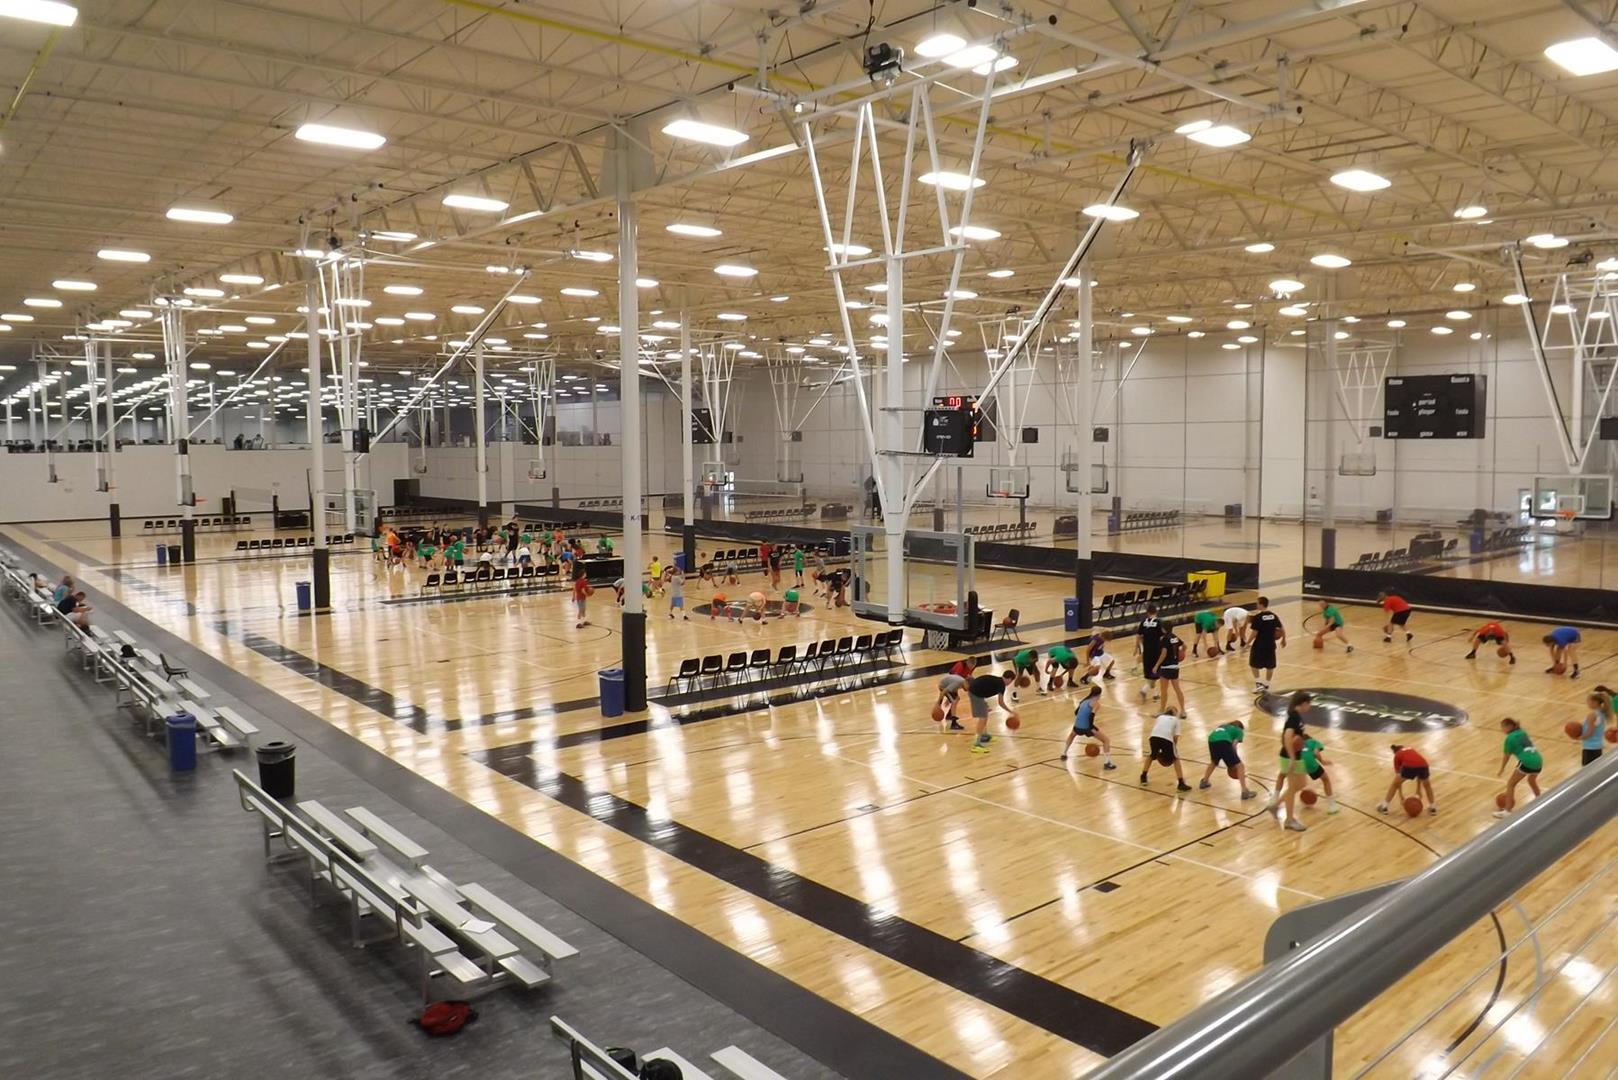 multiple basketball court diagram 2008 f250 wiring 9 top indoor facilities for 2016 sports planning guide